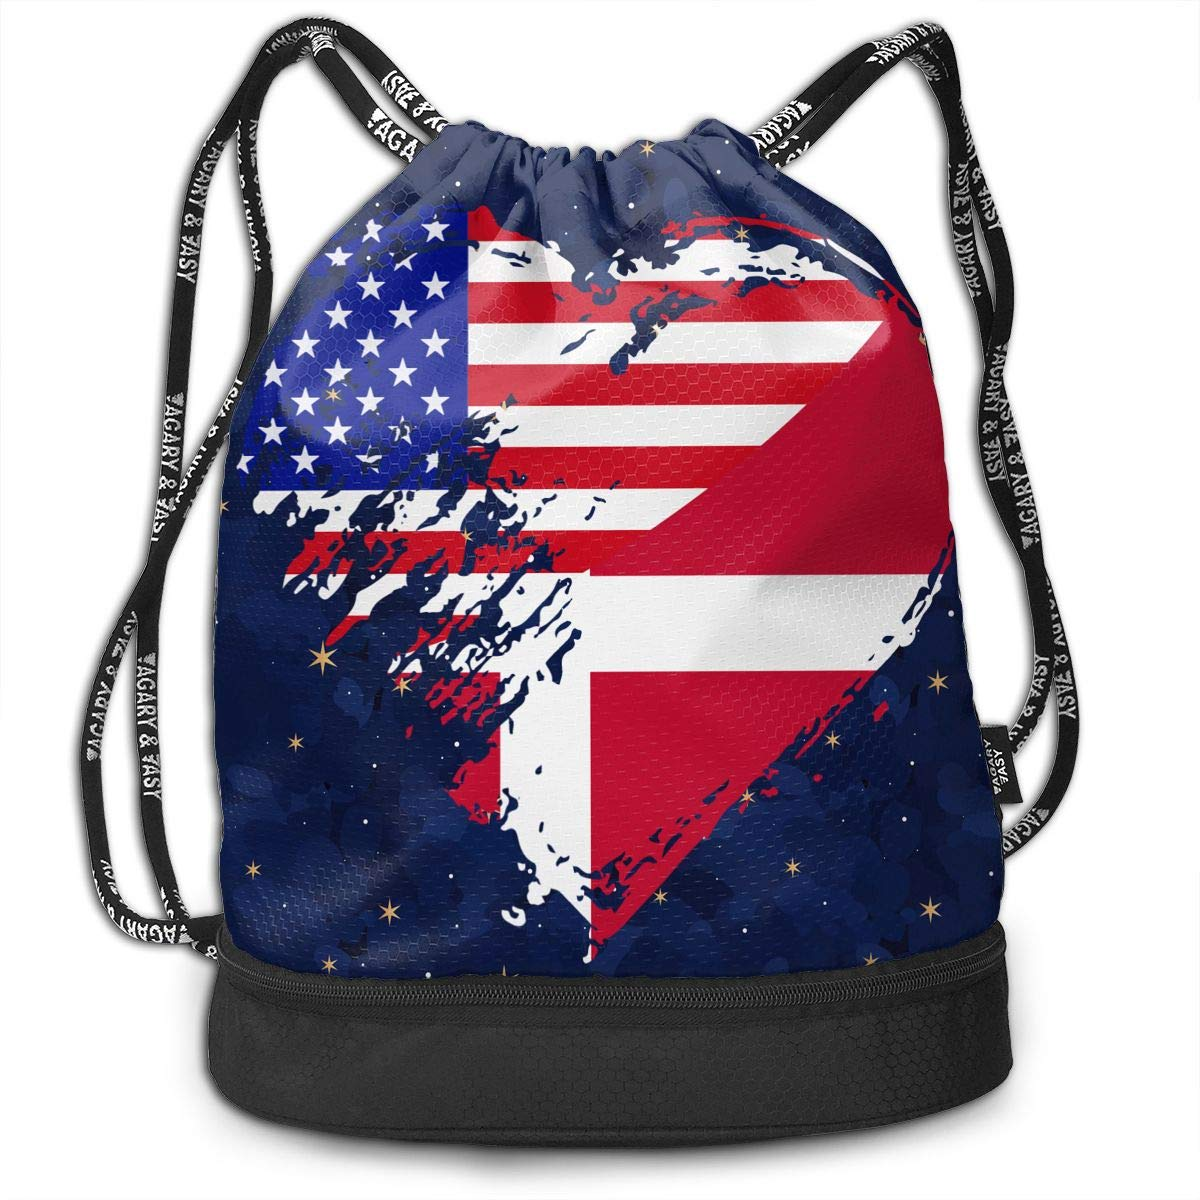 Denmark American Heart Flag Drawstring Bag Multifunctional String Backpack Custom Cinch Backpack Rucksack Gym Bag